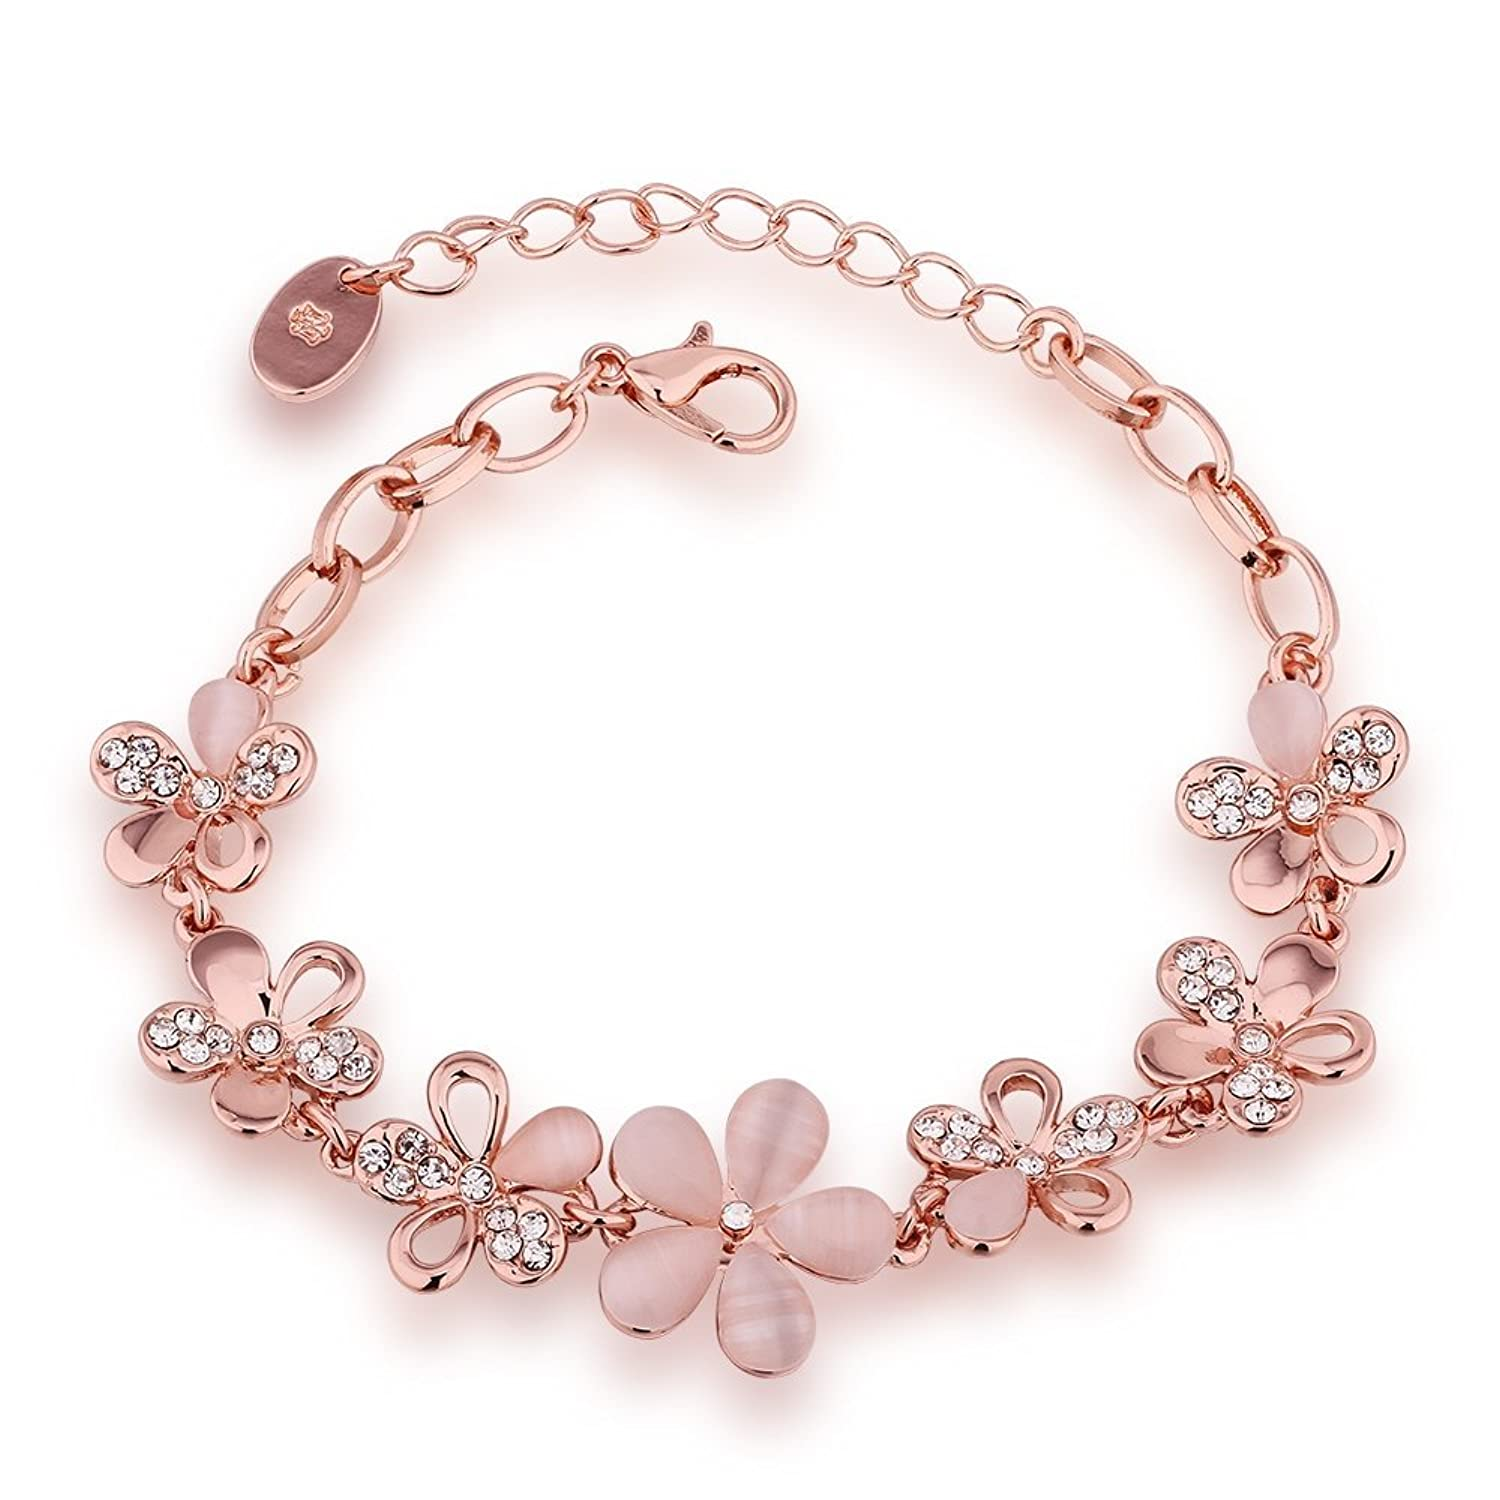 Buy Yutii Rose Gold Crystal Charm Bracelet For Women Online At Low Prices  In India  Amazon Jewellery Store  Amazon